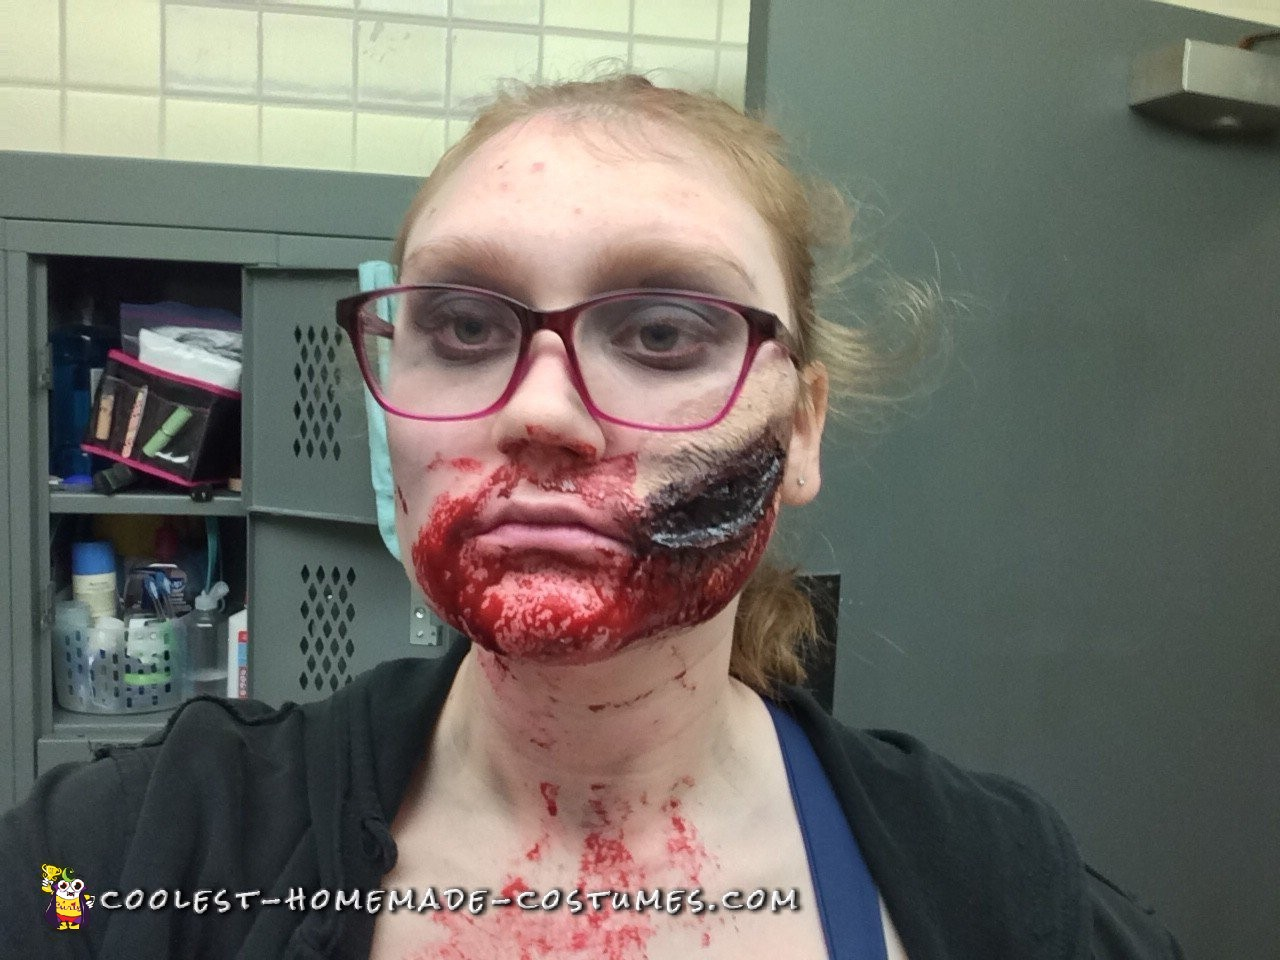 Coolest Easiest and Grotesque Zombie Walker Costume